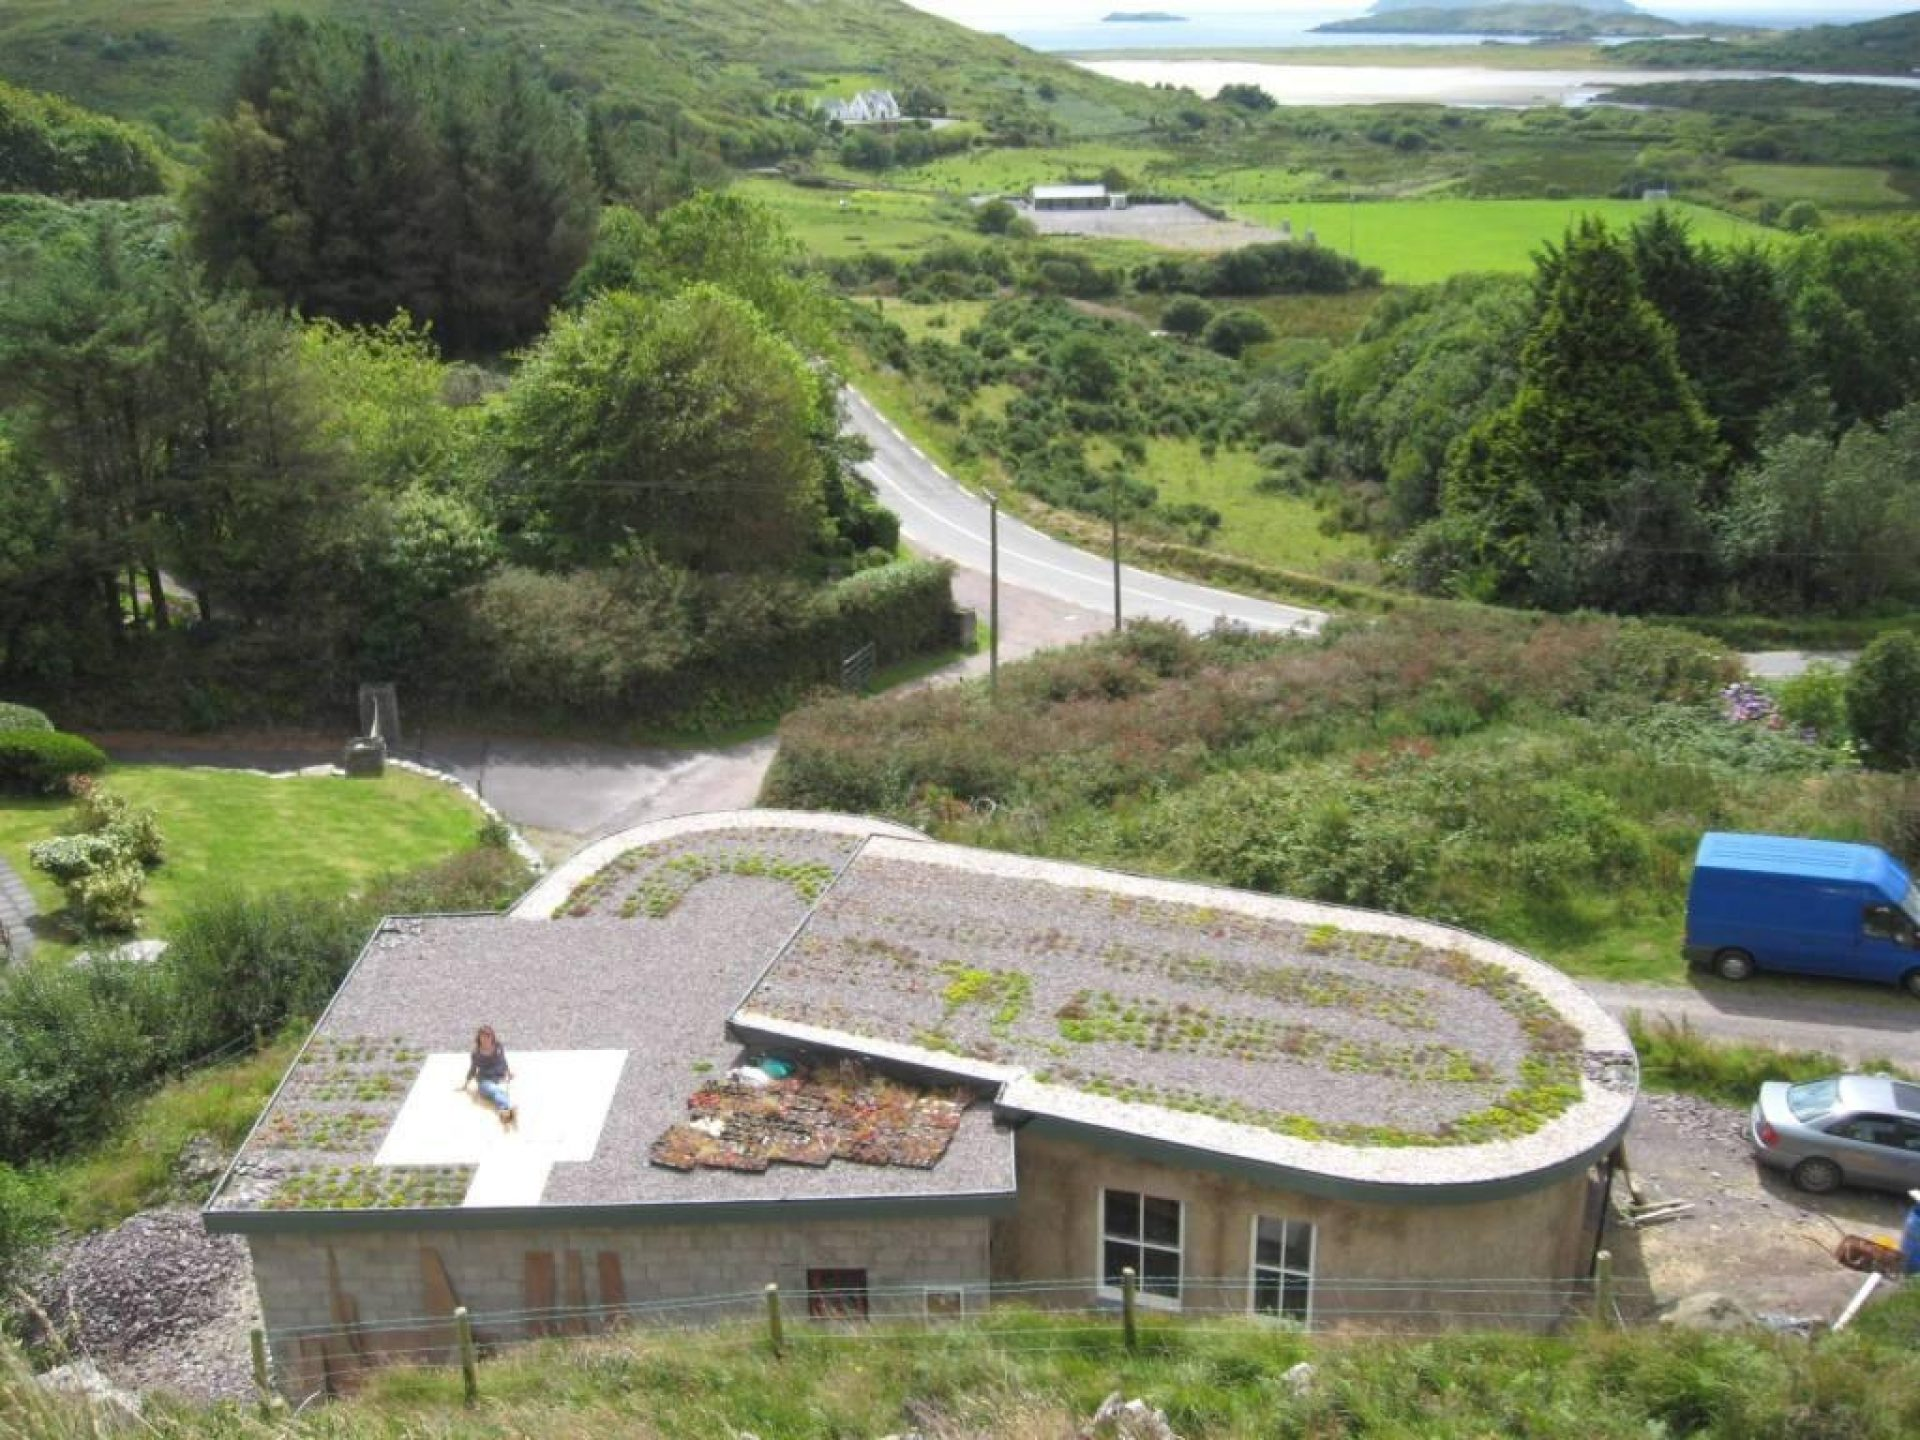 Michael O'Connor Civil Engineering Consultants - Longfield, Firies, Killarney, Co Kerry Contact +(353) 6697 64910 and +353)86 8377804   email: moc@engineerkerry.com